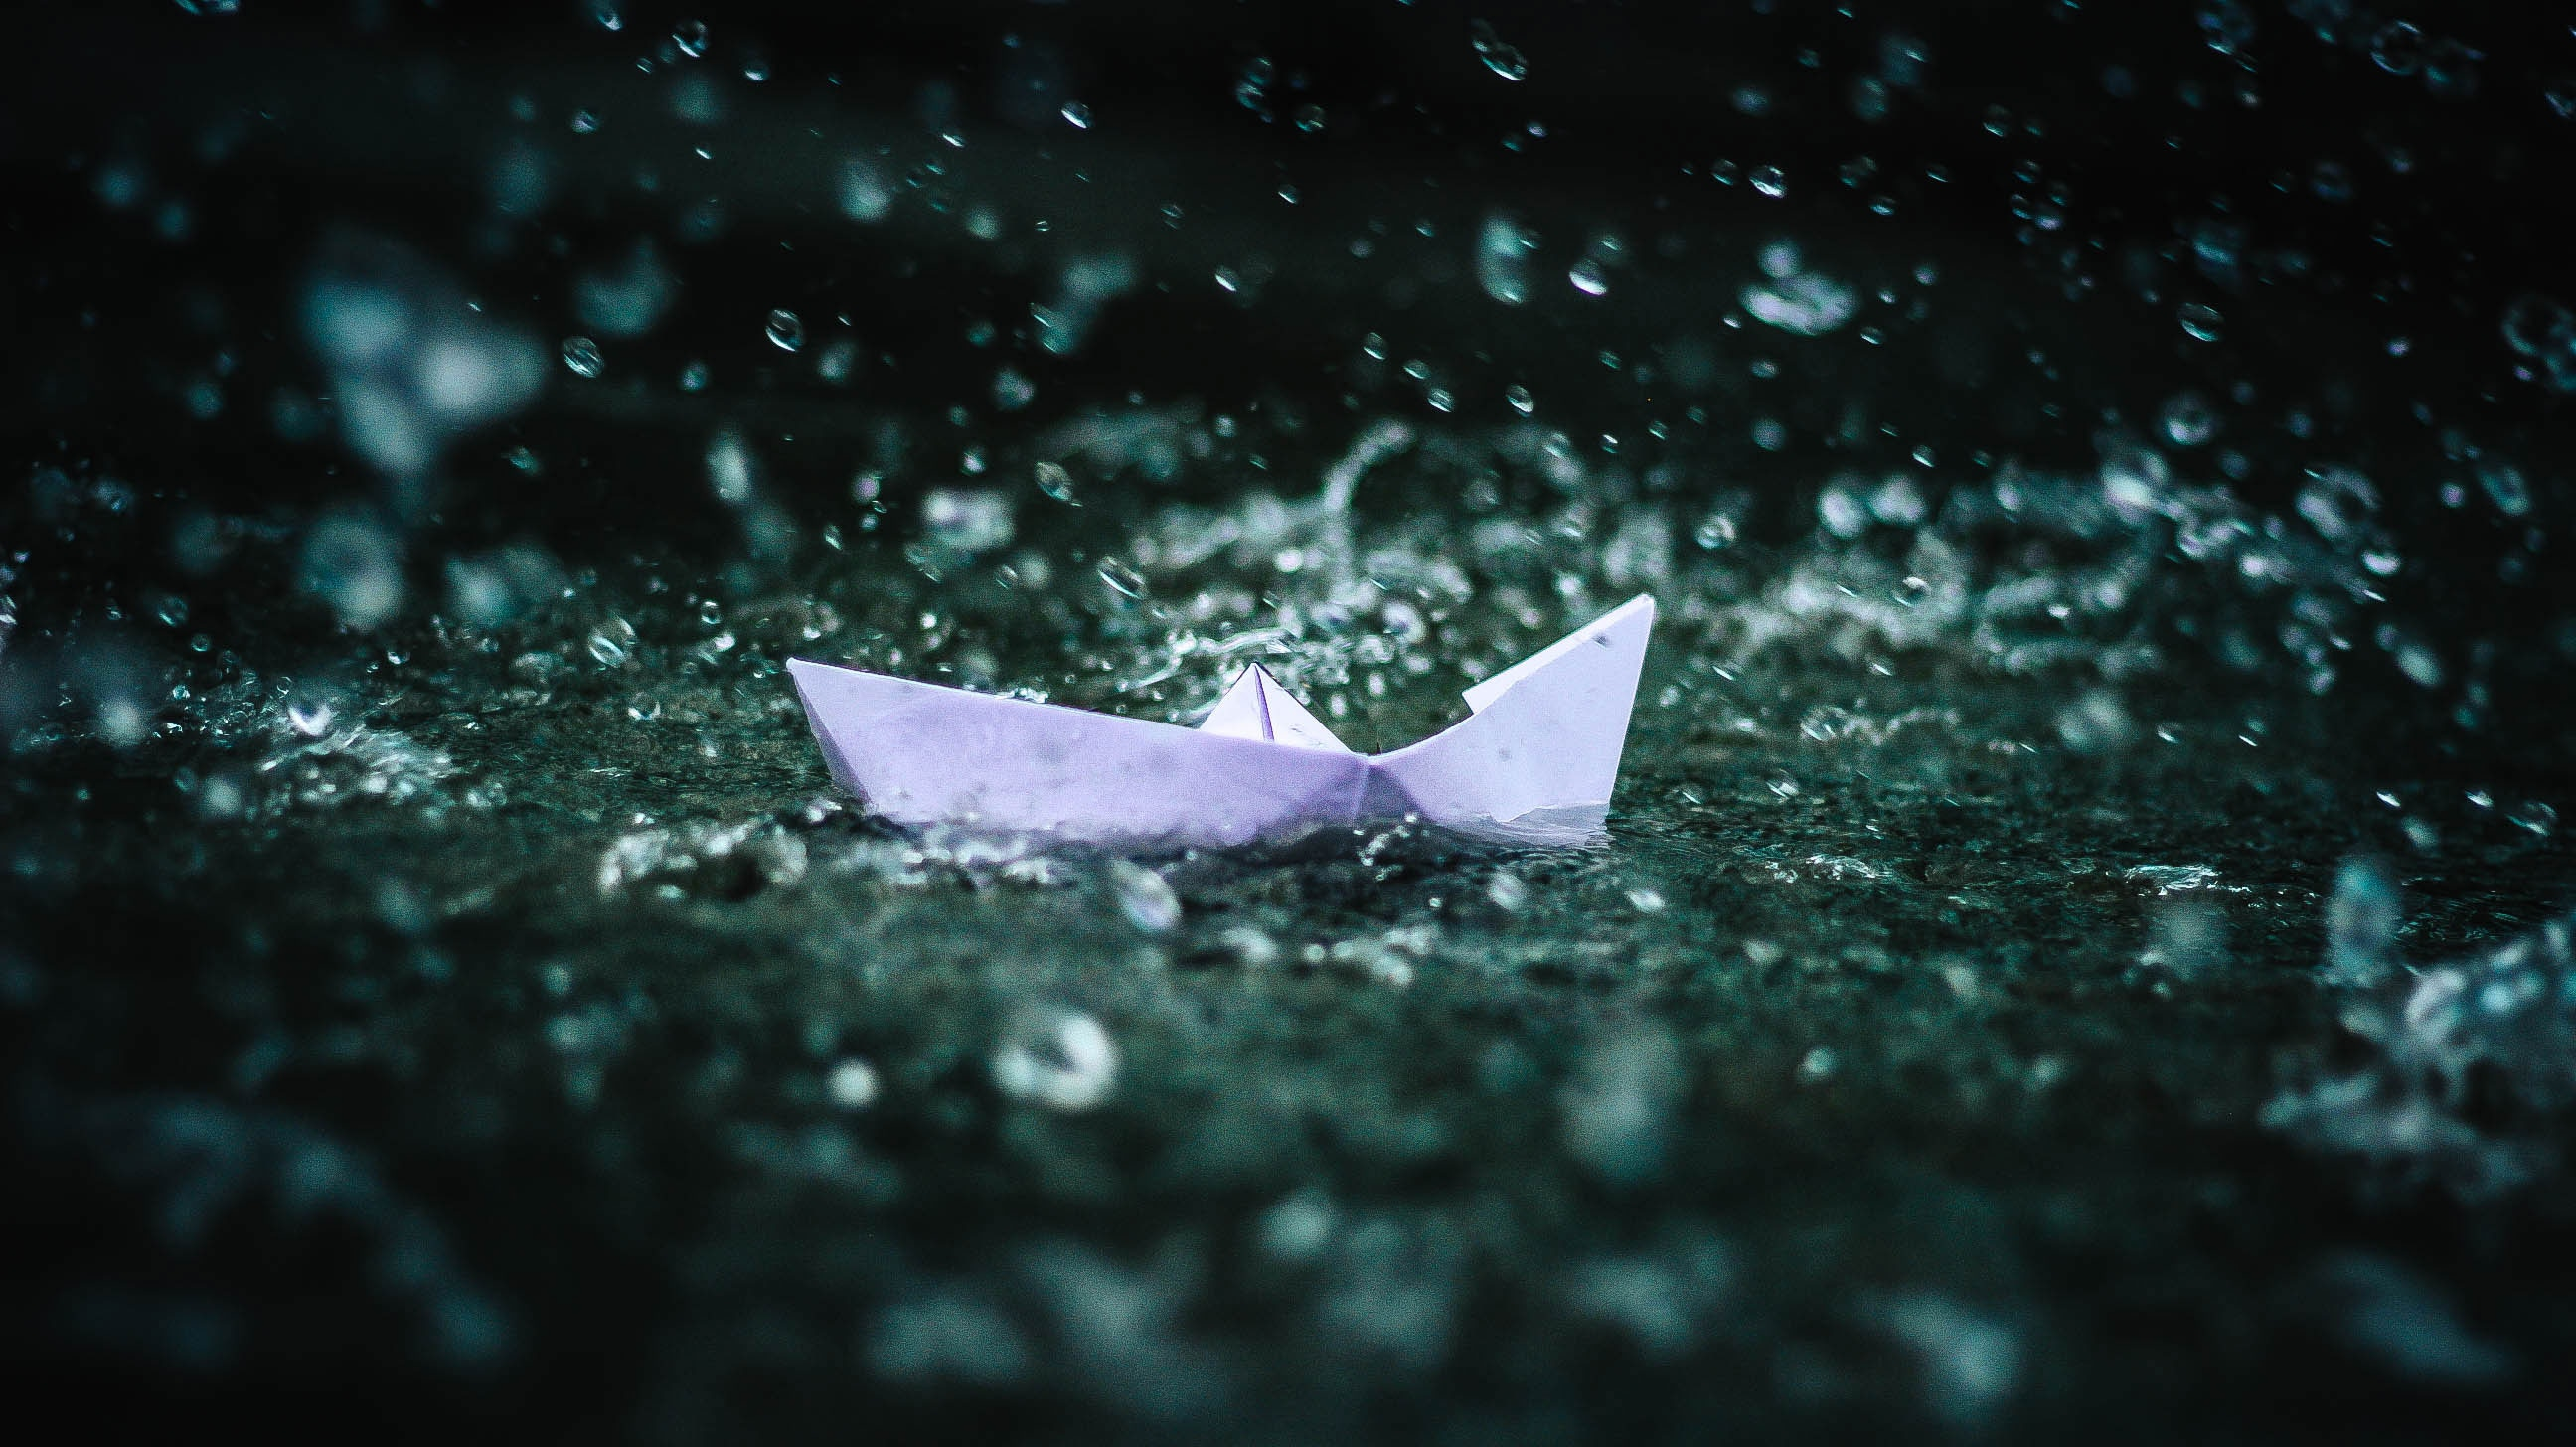 87811 download wallpaper Water, Miscellanea, Miscellaneous, Spray, Ship, Origami, Nautilus screensavers and pictures for free